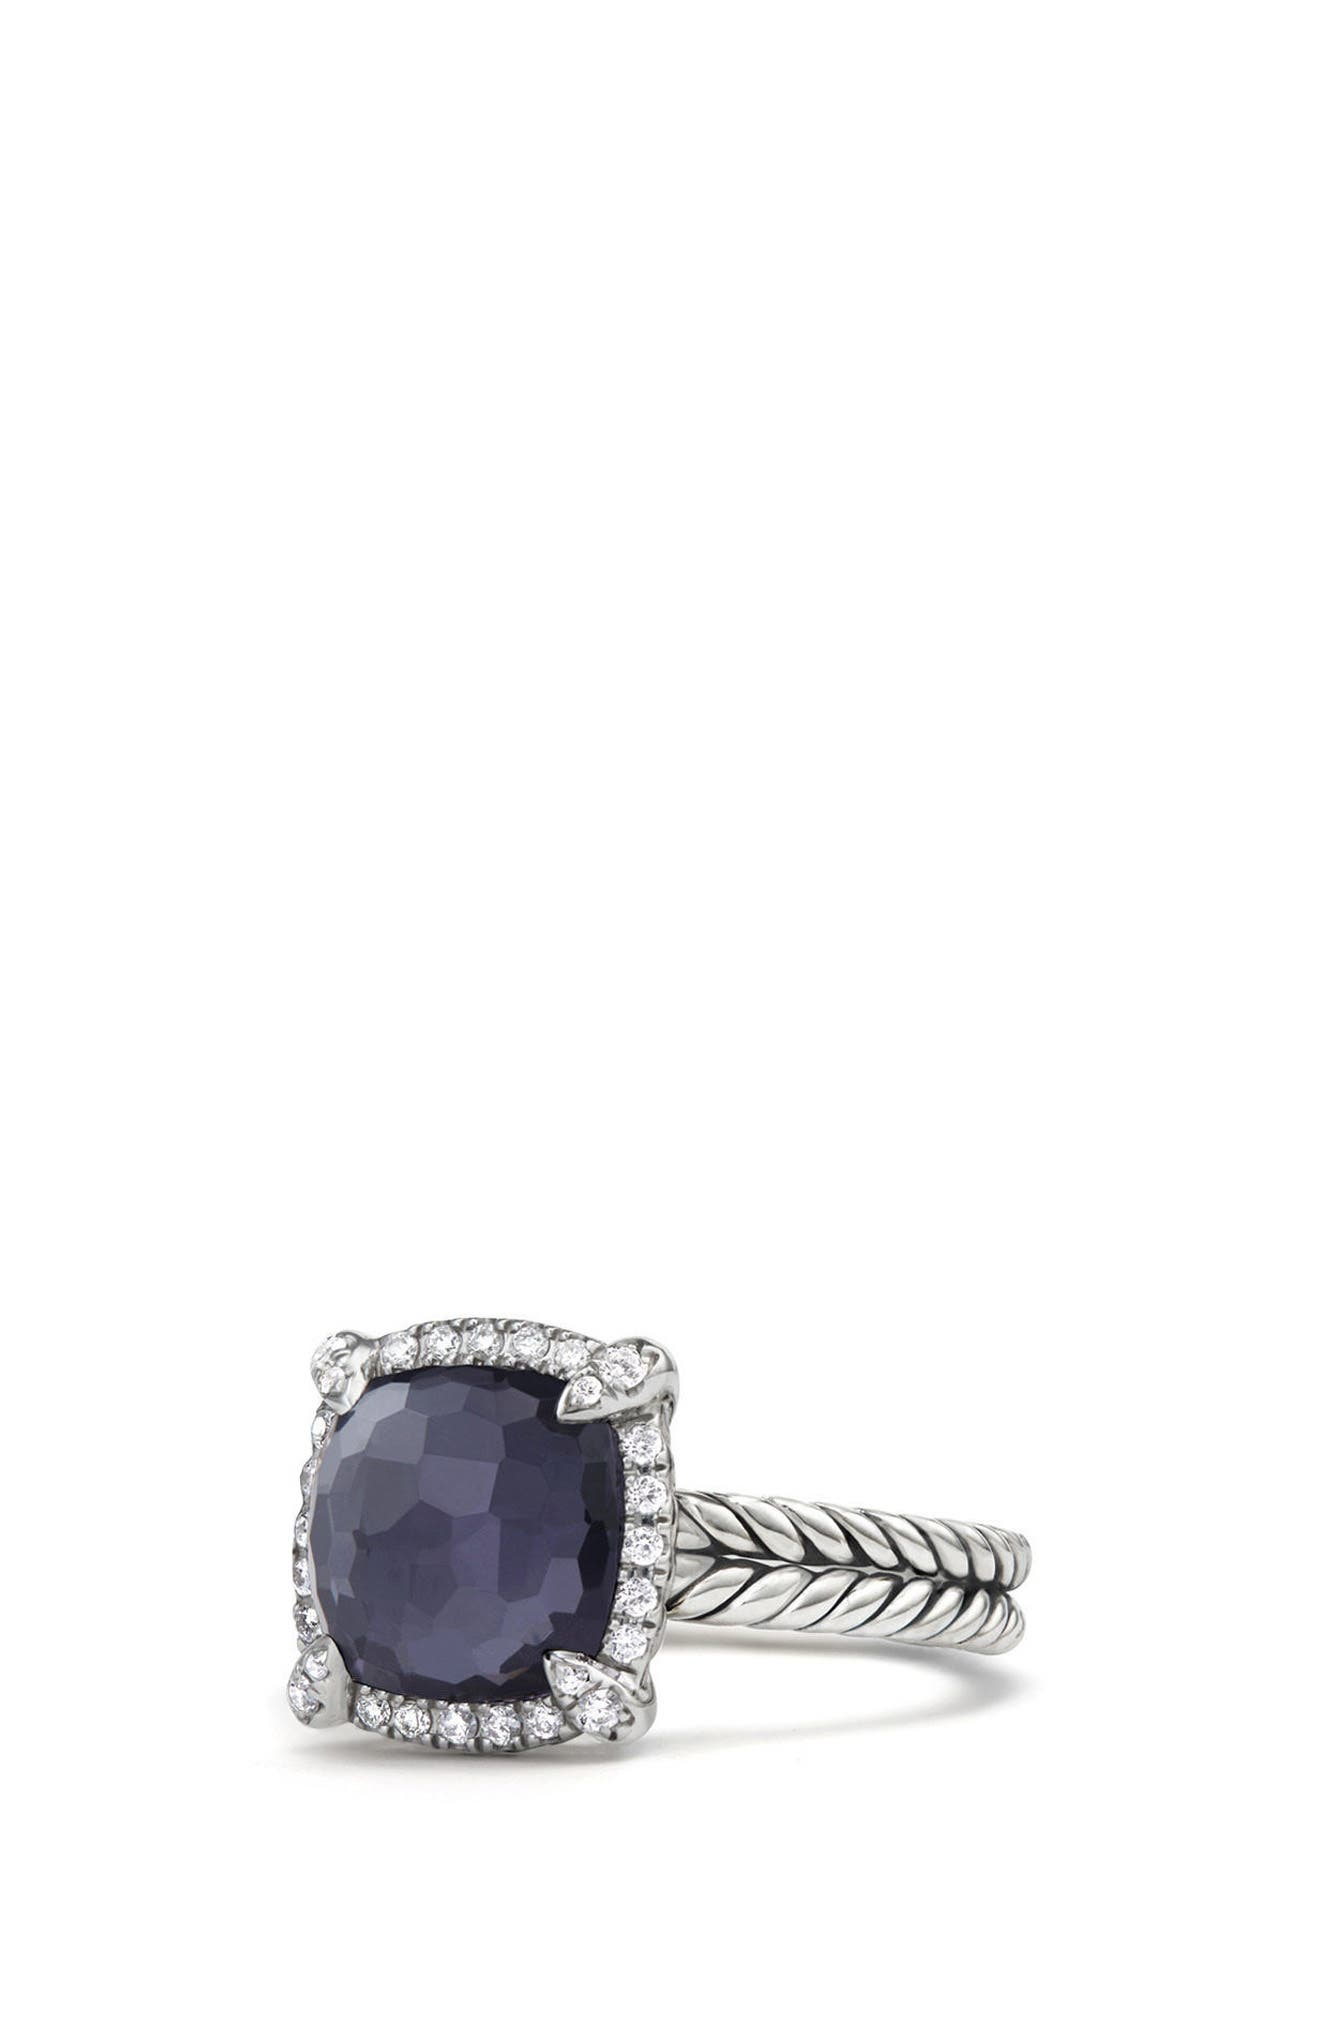 Châtelaine Pavé Bezel Ring with Black Orchid & Diamonds, 9mm,                         Main,                         color, AMETHYST/ HEMETINE